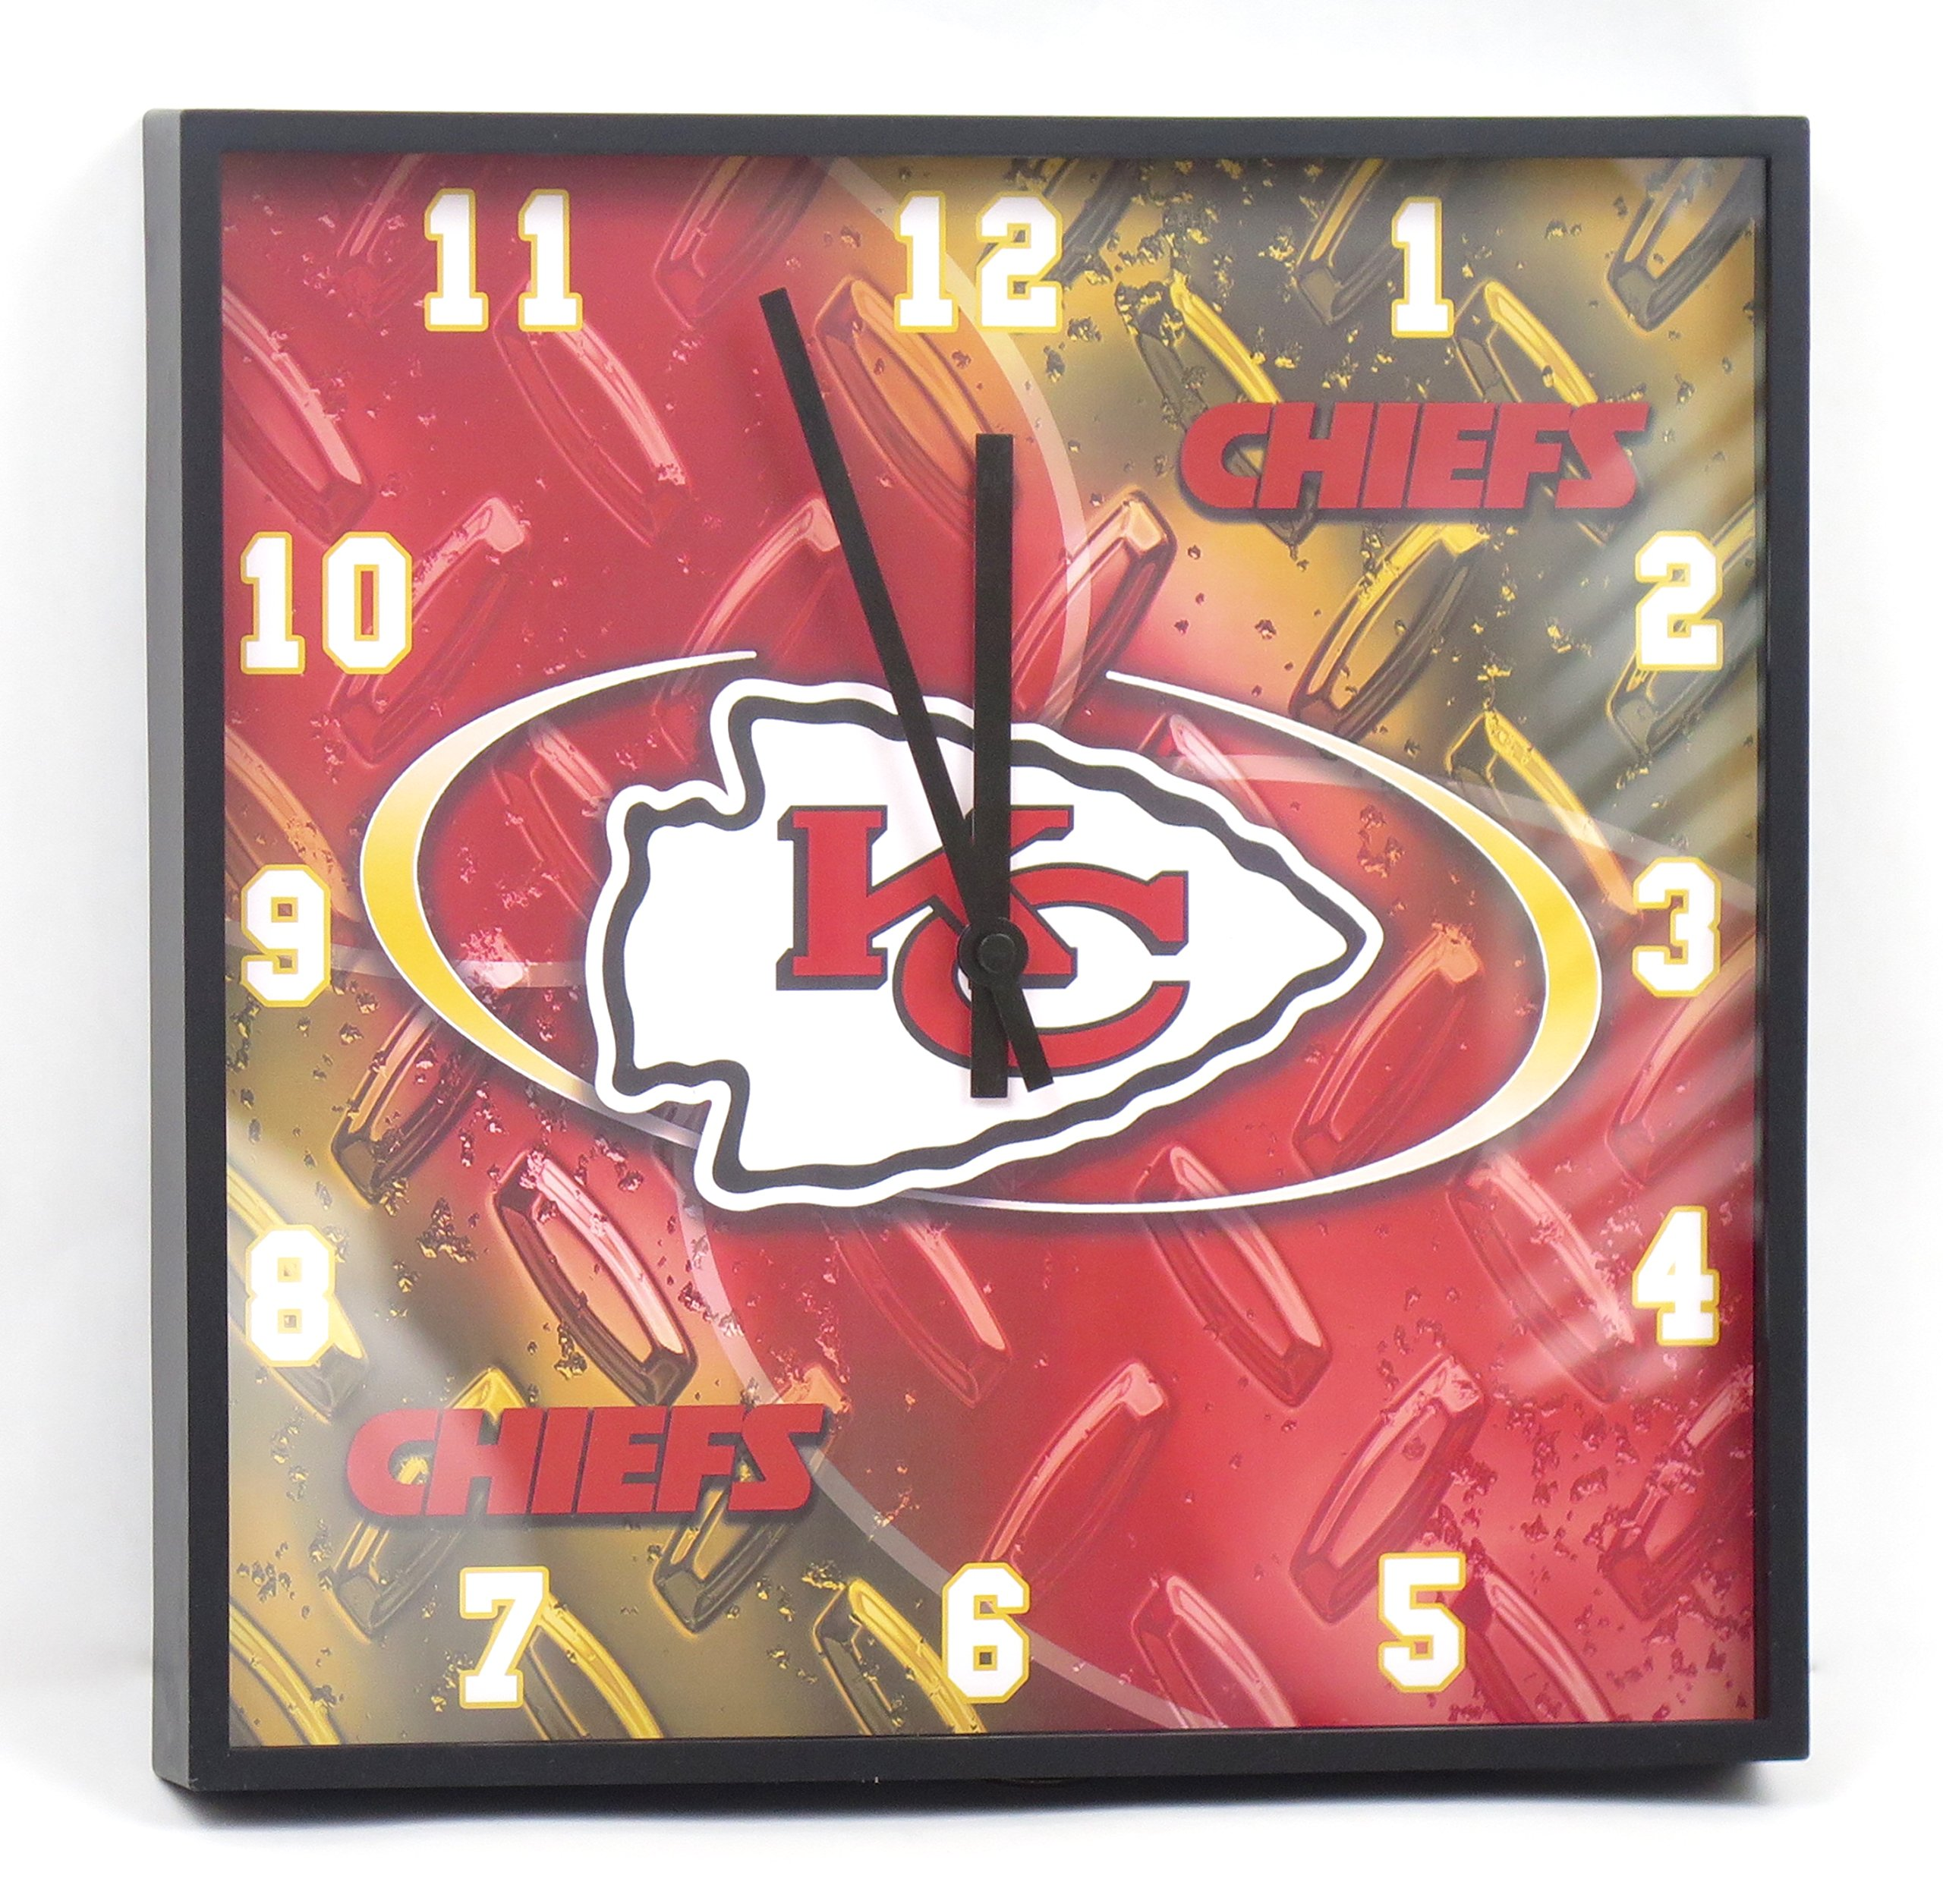 Kansas City Chiefs large square wall clock. Ideal for family room, man cave or office decor. Wonderful gift for dad on Father's Day.